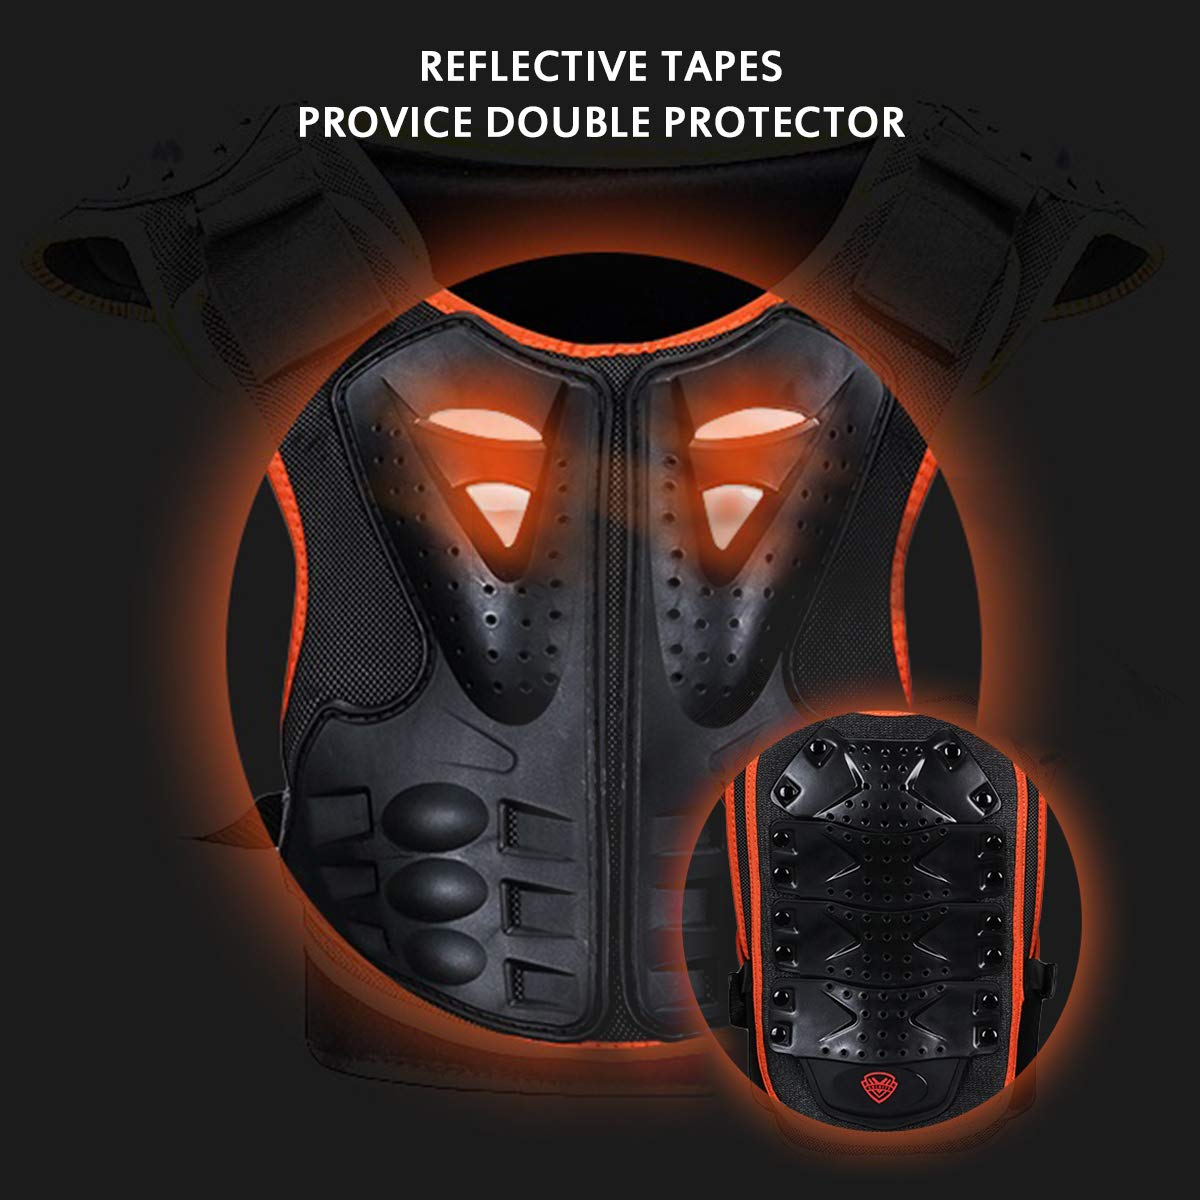 Kids Body Chest Spine Protector Armor Protective Vest Reflective Gear For Dirt Bike Skiing Skating Sport Size Medal by color tree (Image #7)